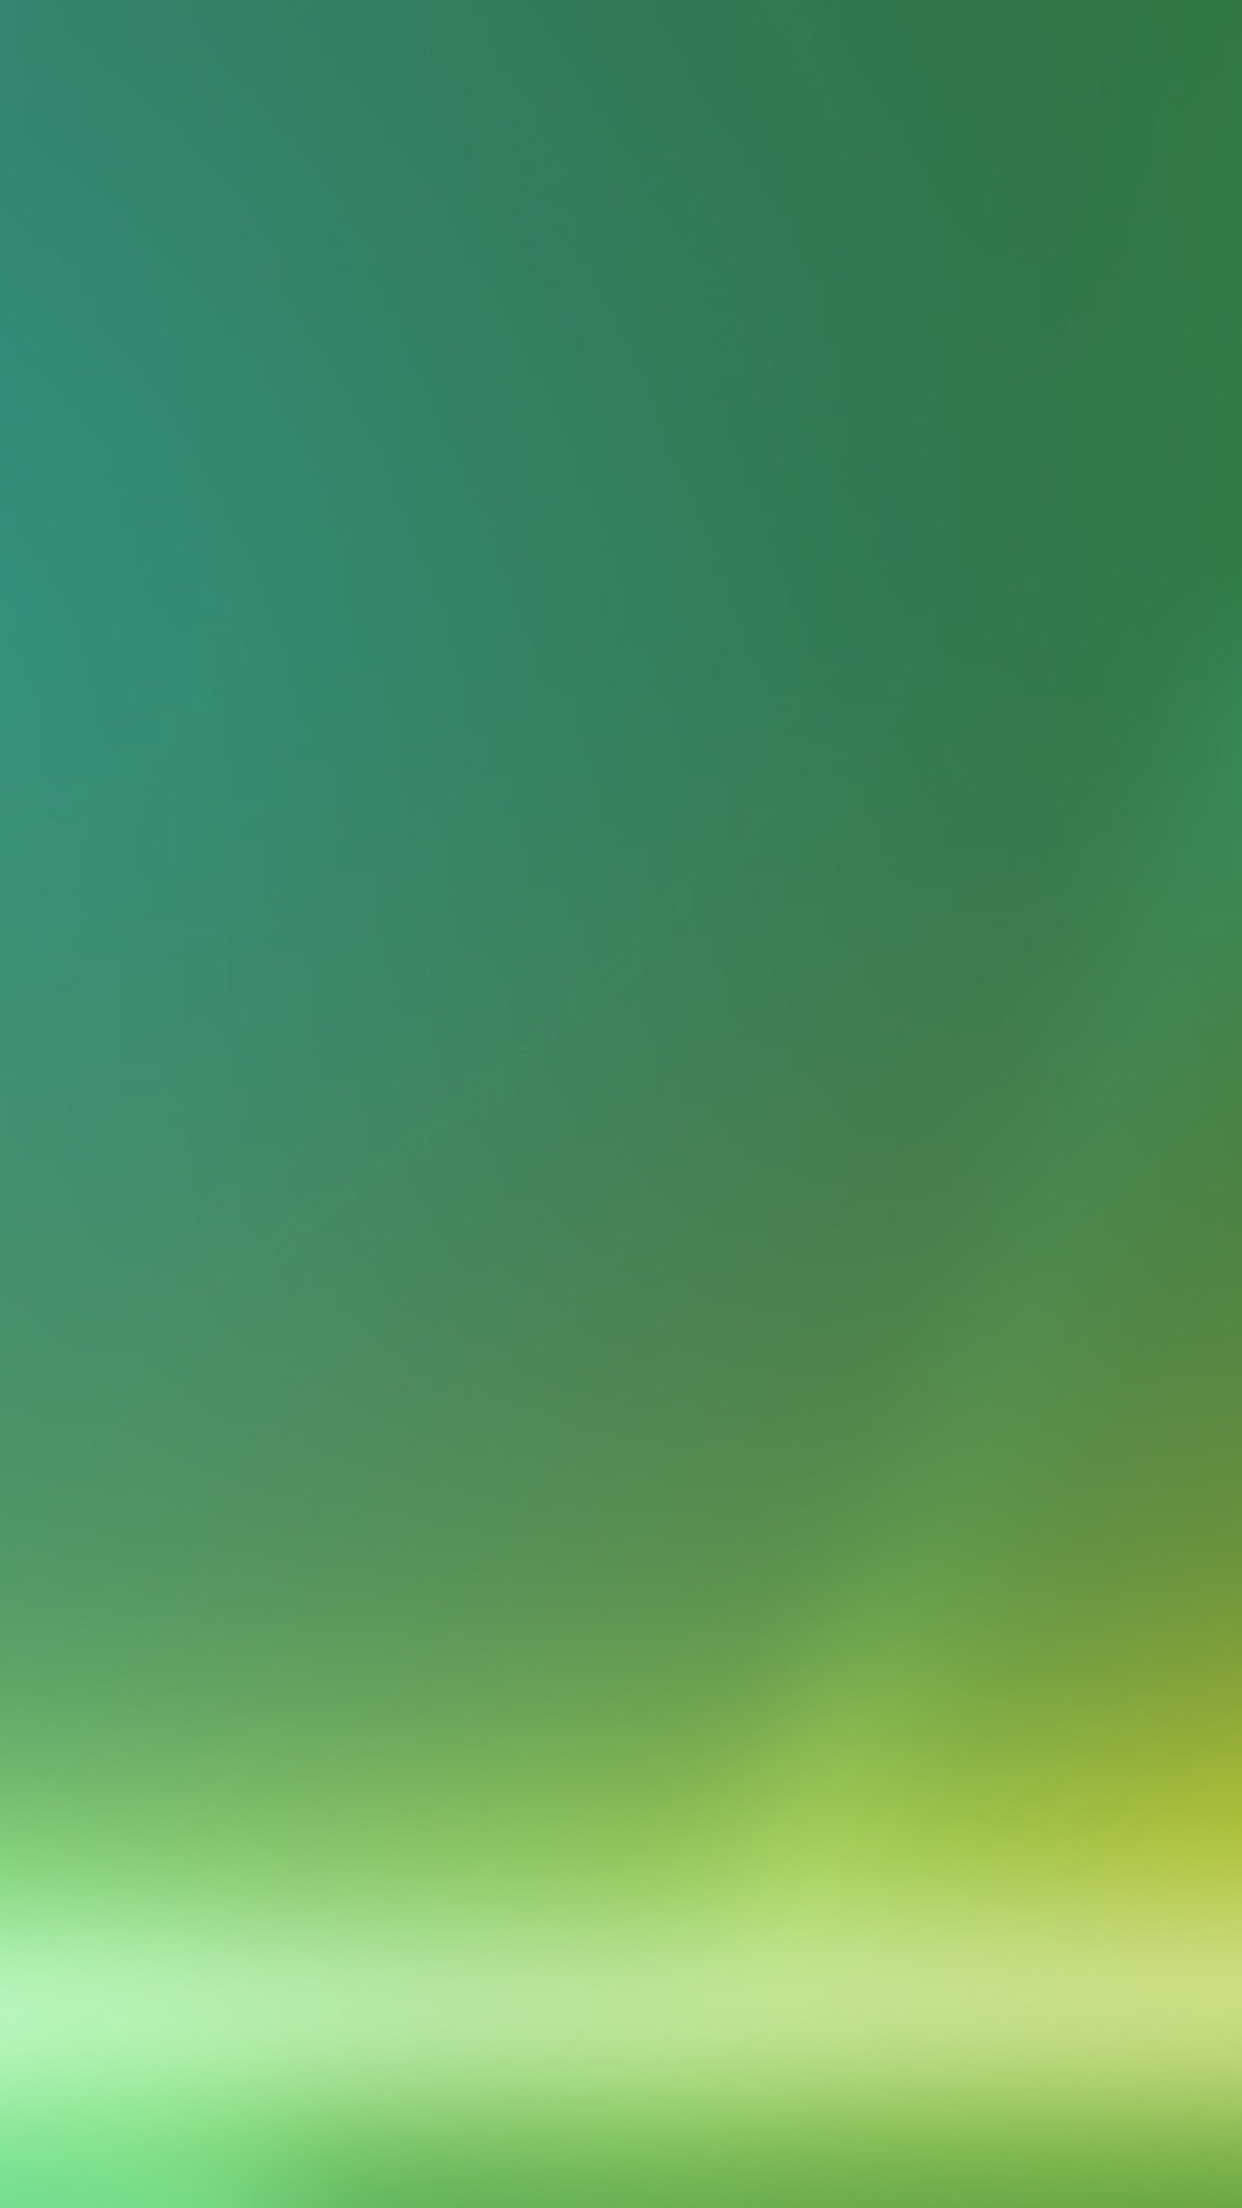 Colors 3 3Wallpapers iPhone Parallax Couleurs : 3